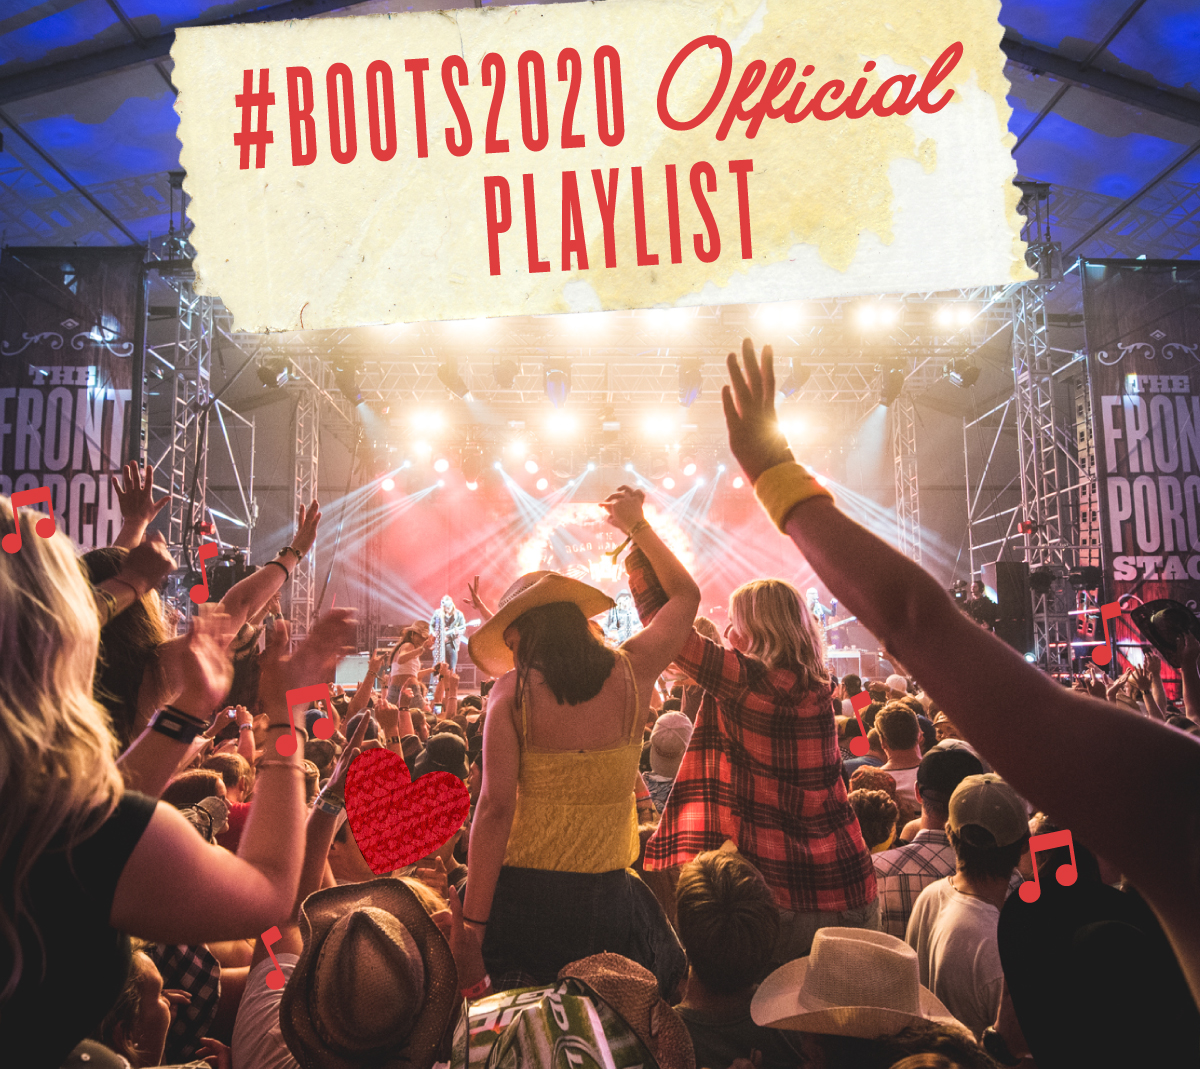 Your #Boots2020 Official Playlist is LIVE